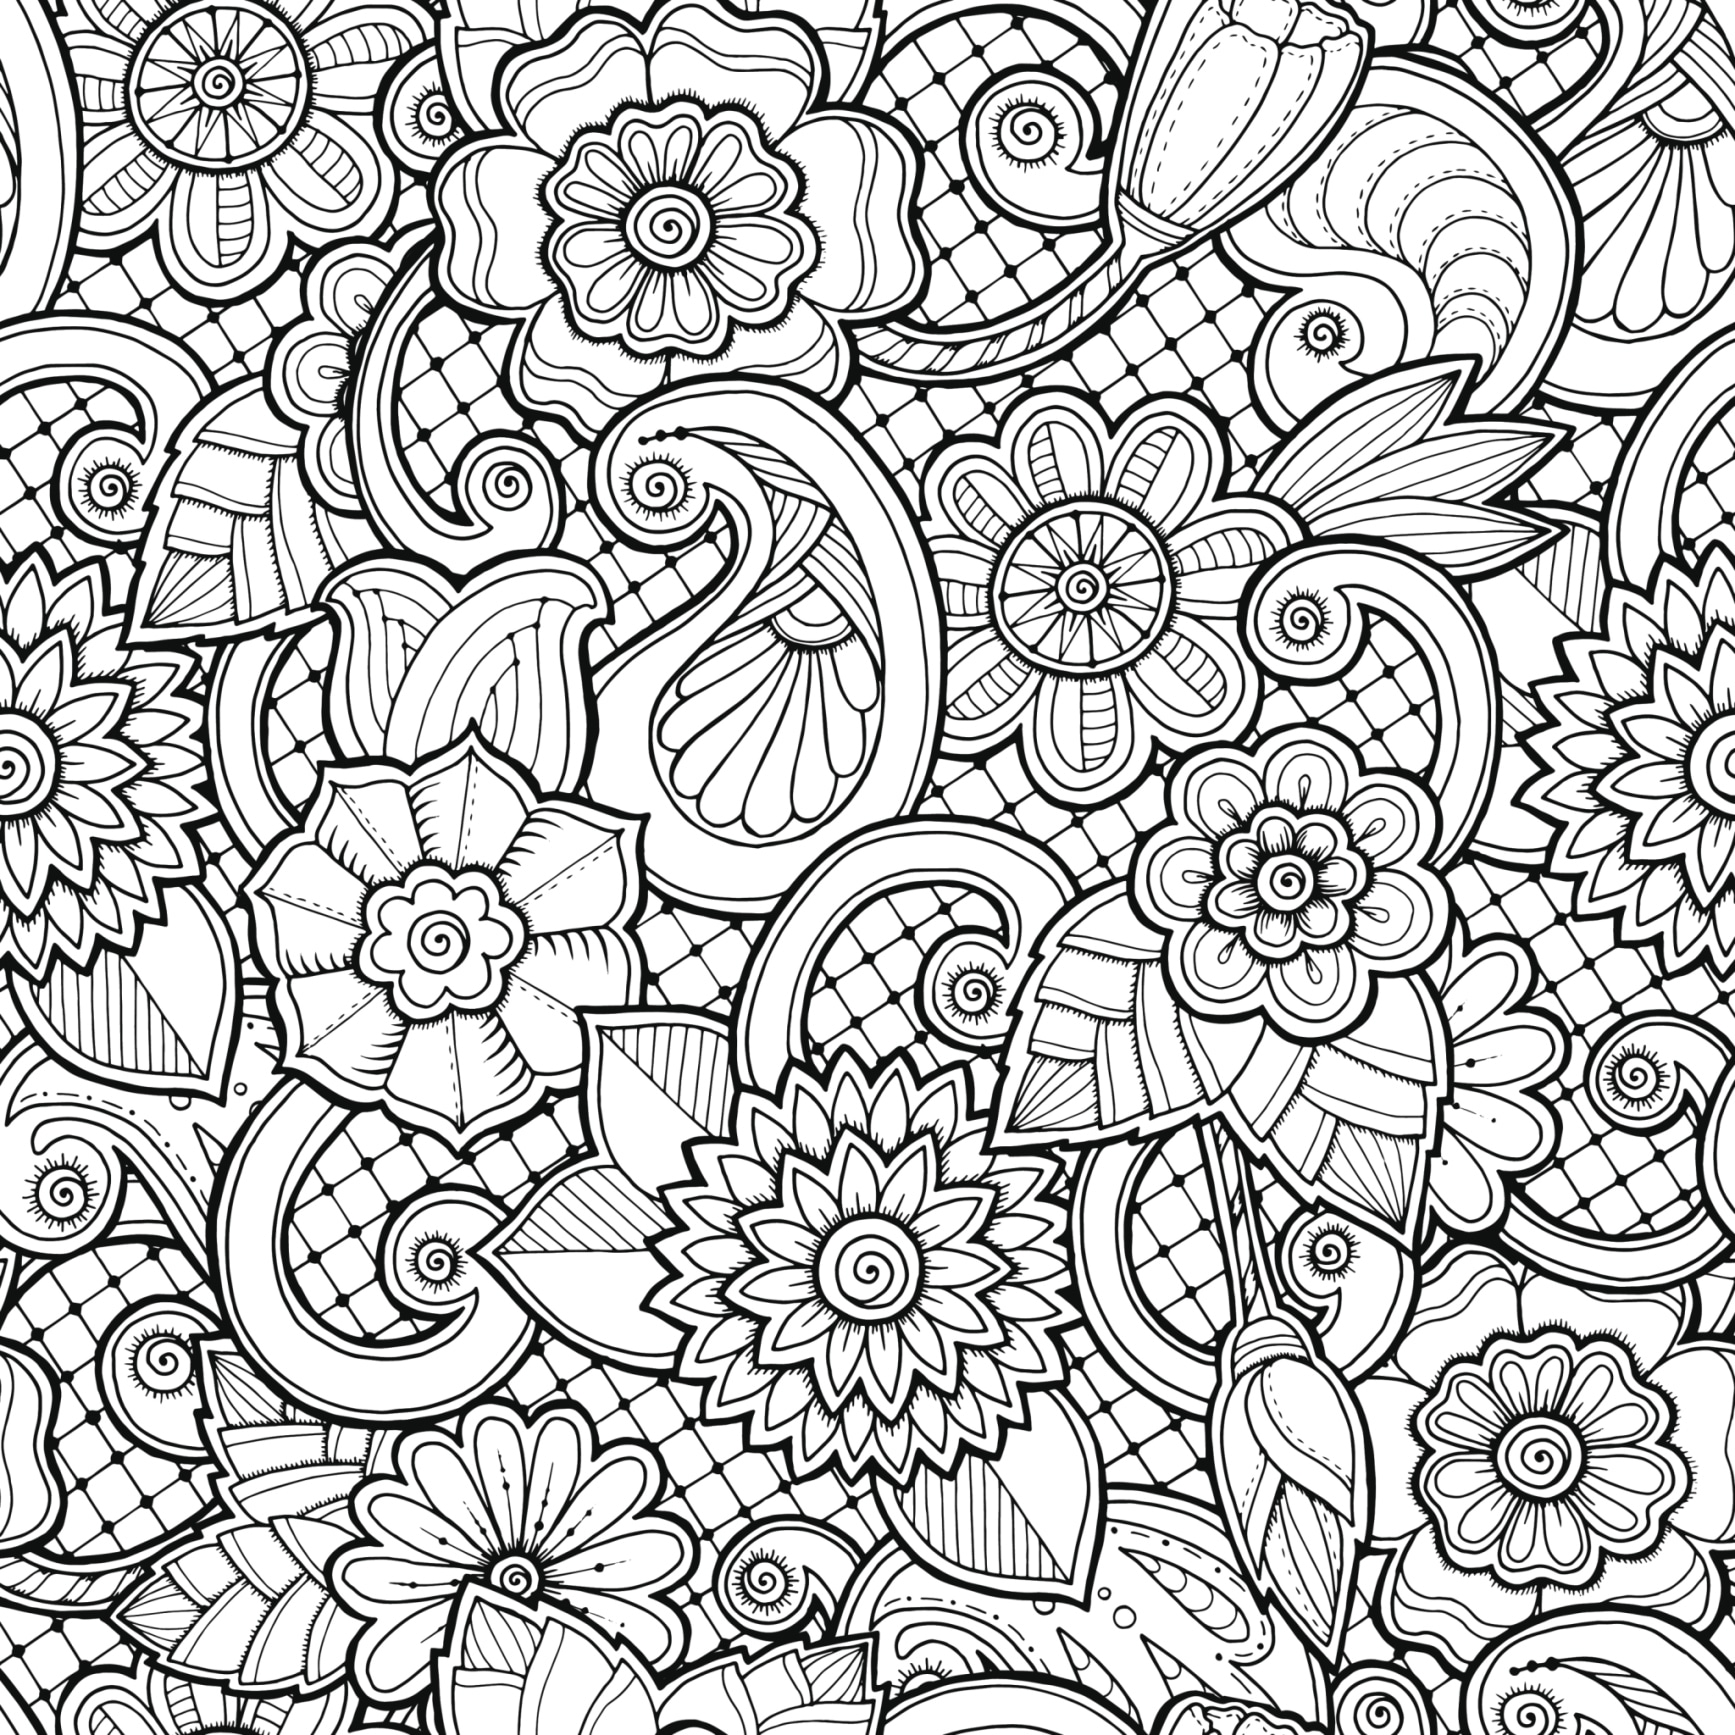 Colouring Pages one page_Page_10 - Chatham-Kent Public Health Unit